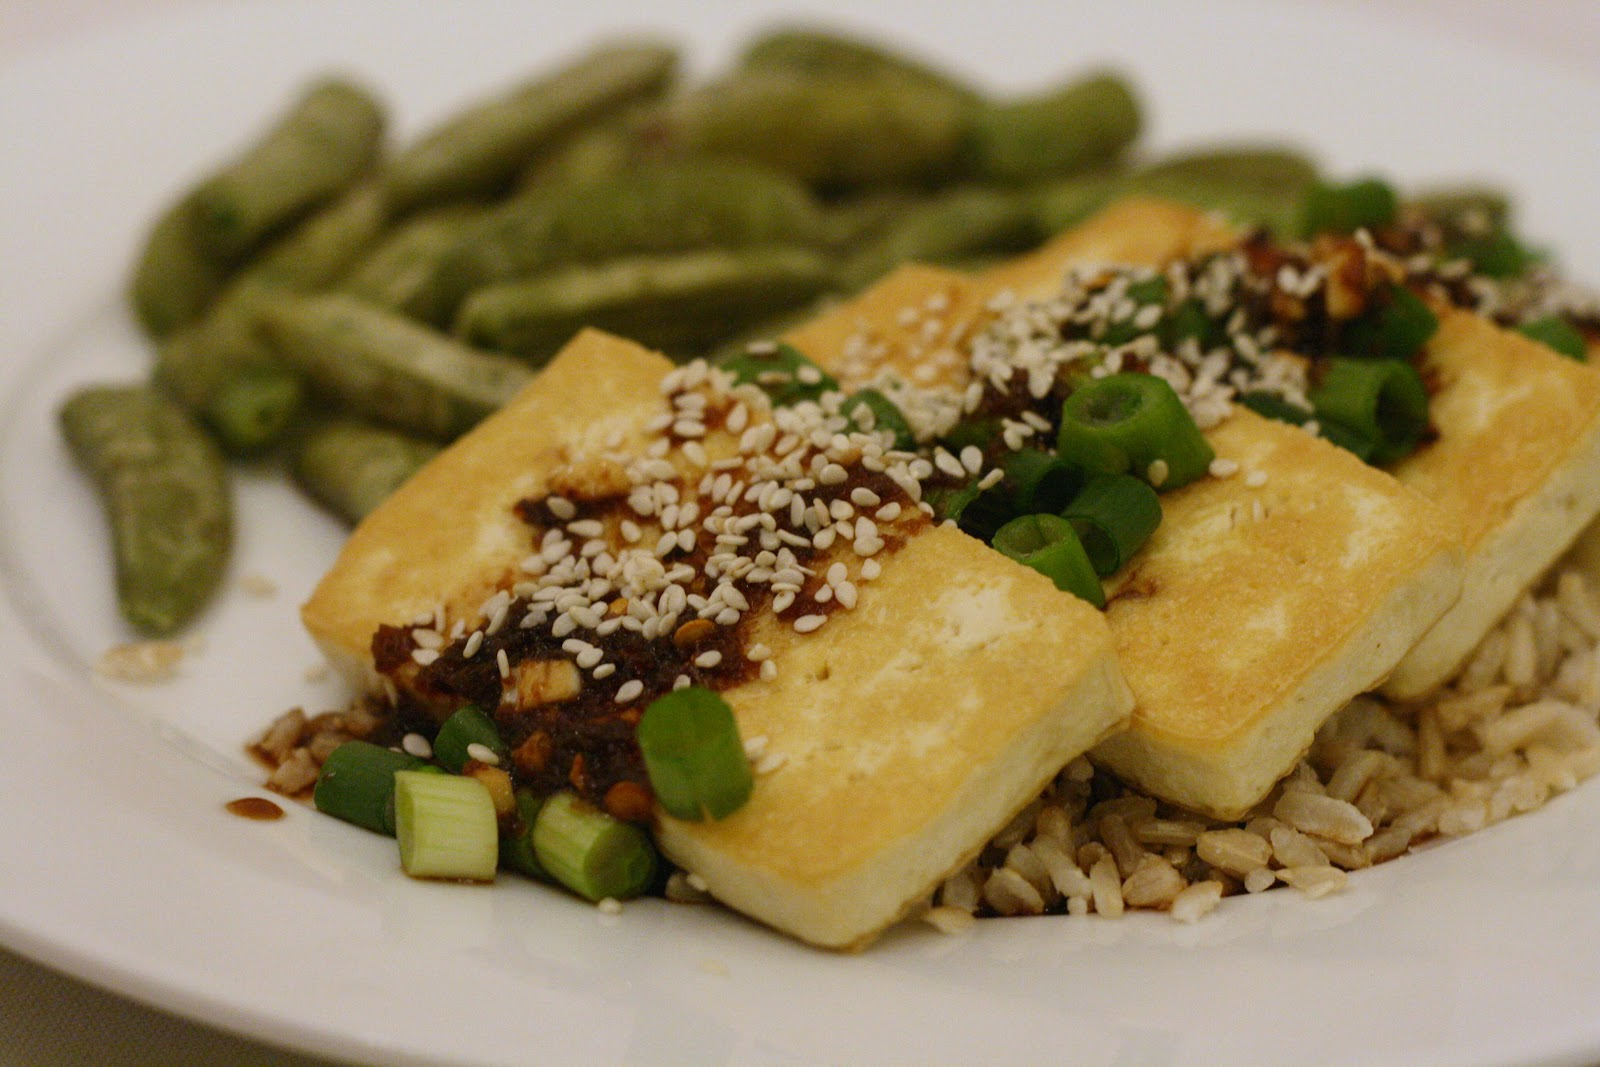 Fried Tofu with Spicy Ginger Sauce